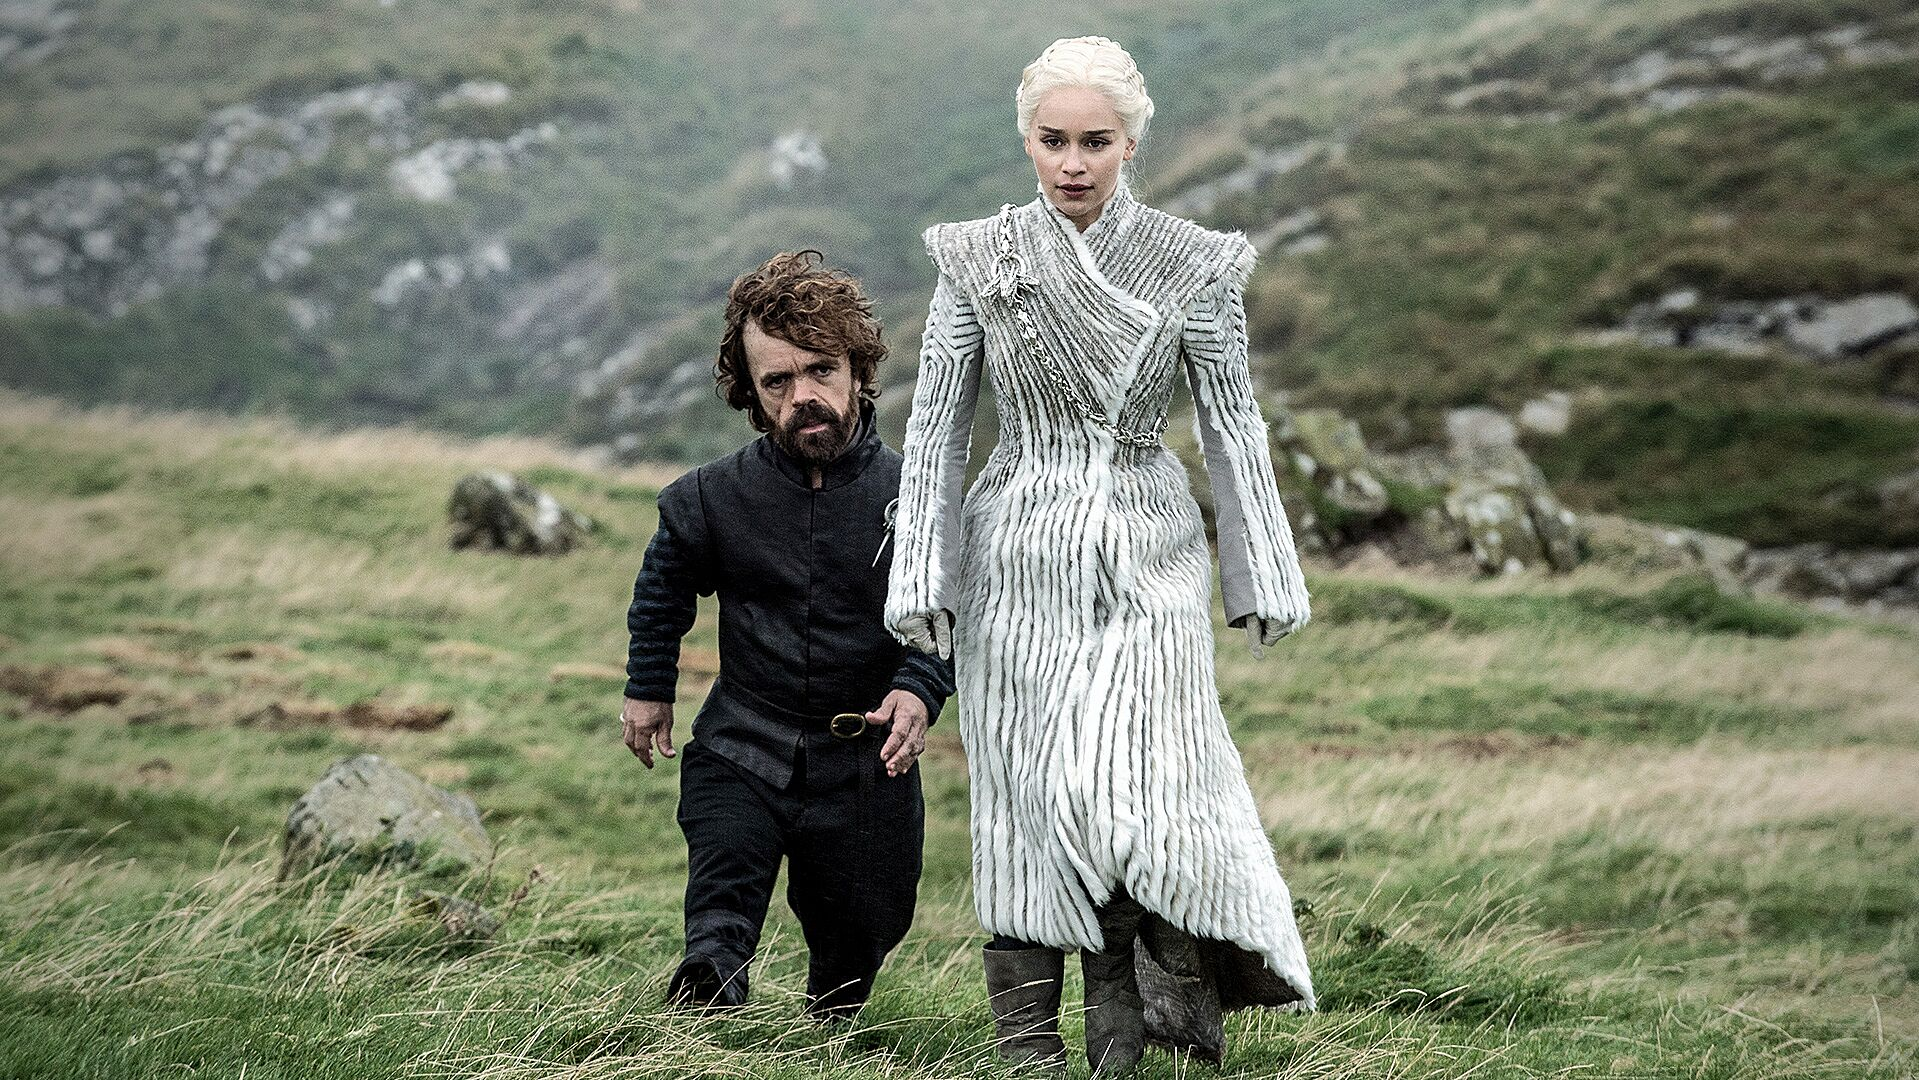 game of thrones designers explain symbolism behind costumes and sets